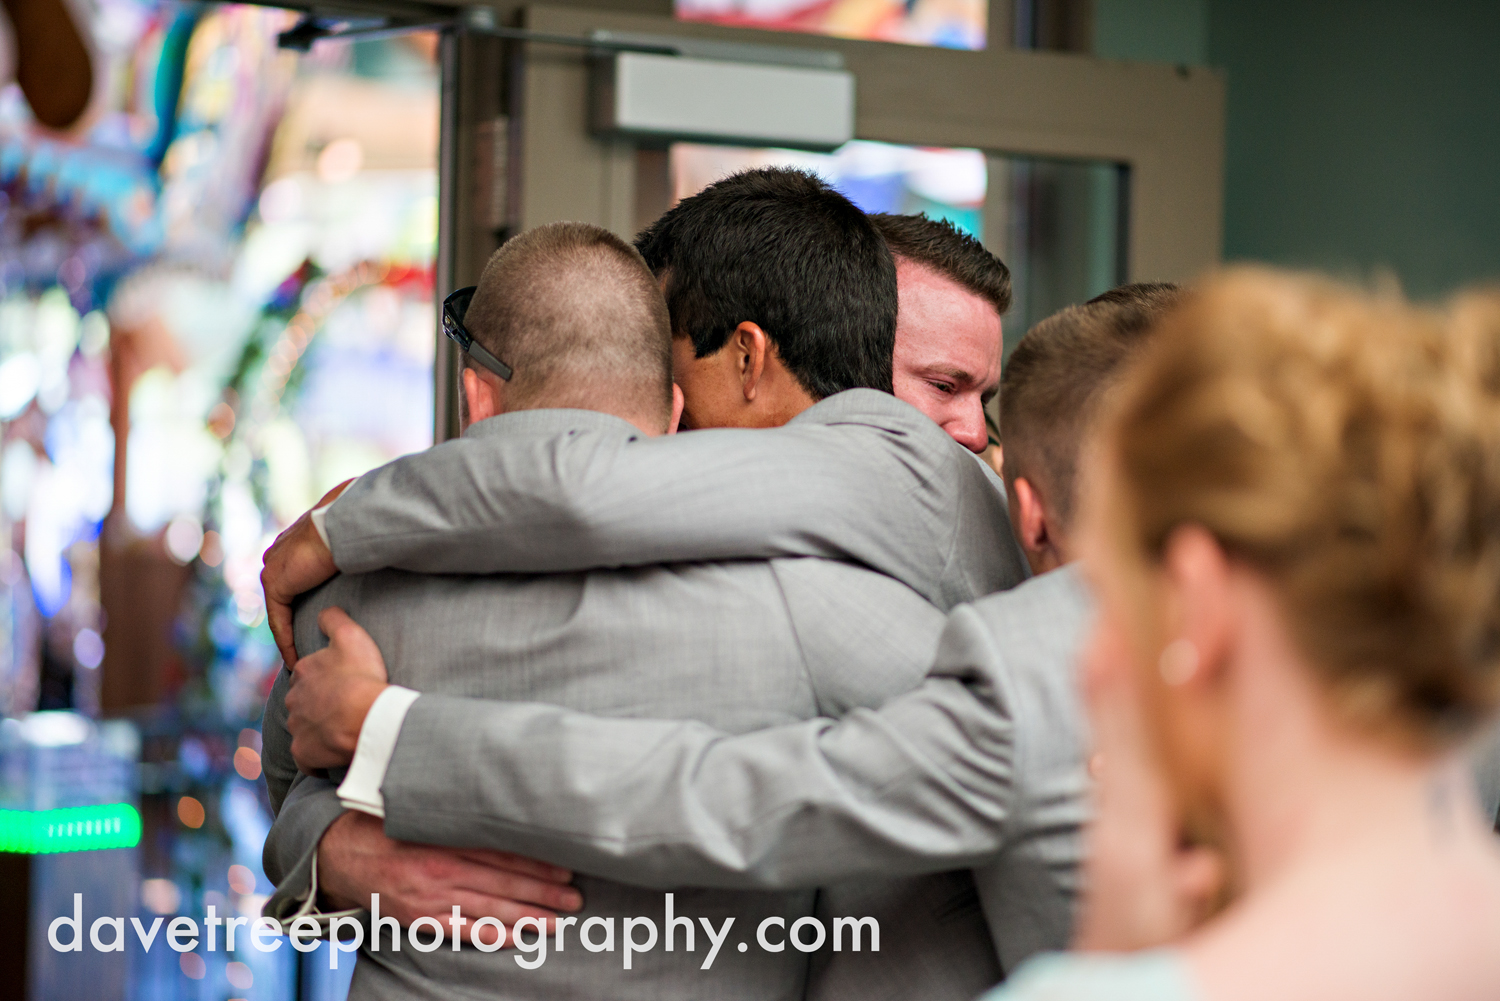 veranda_wedding_photographer_st_joseph_wedding_105.jpg